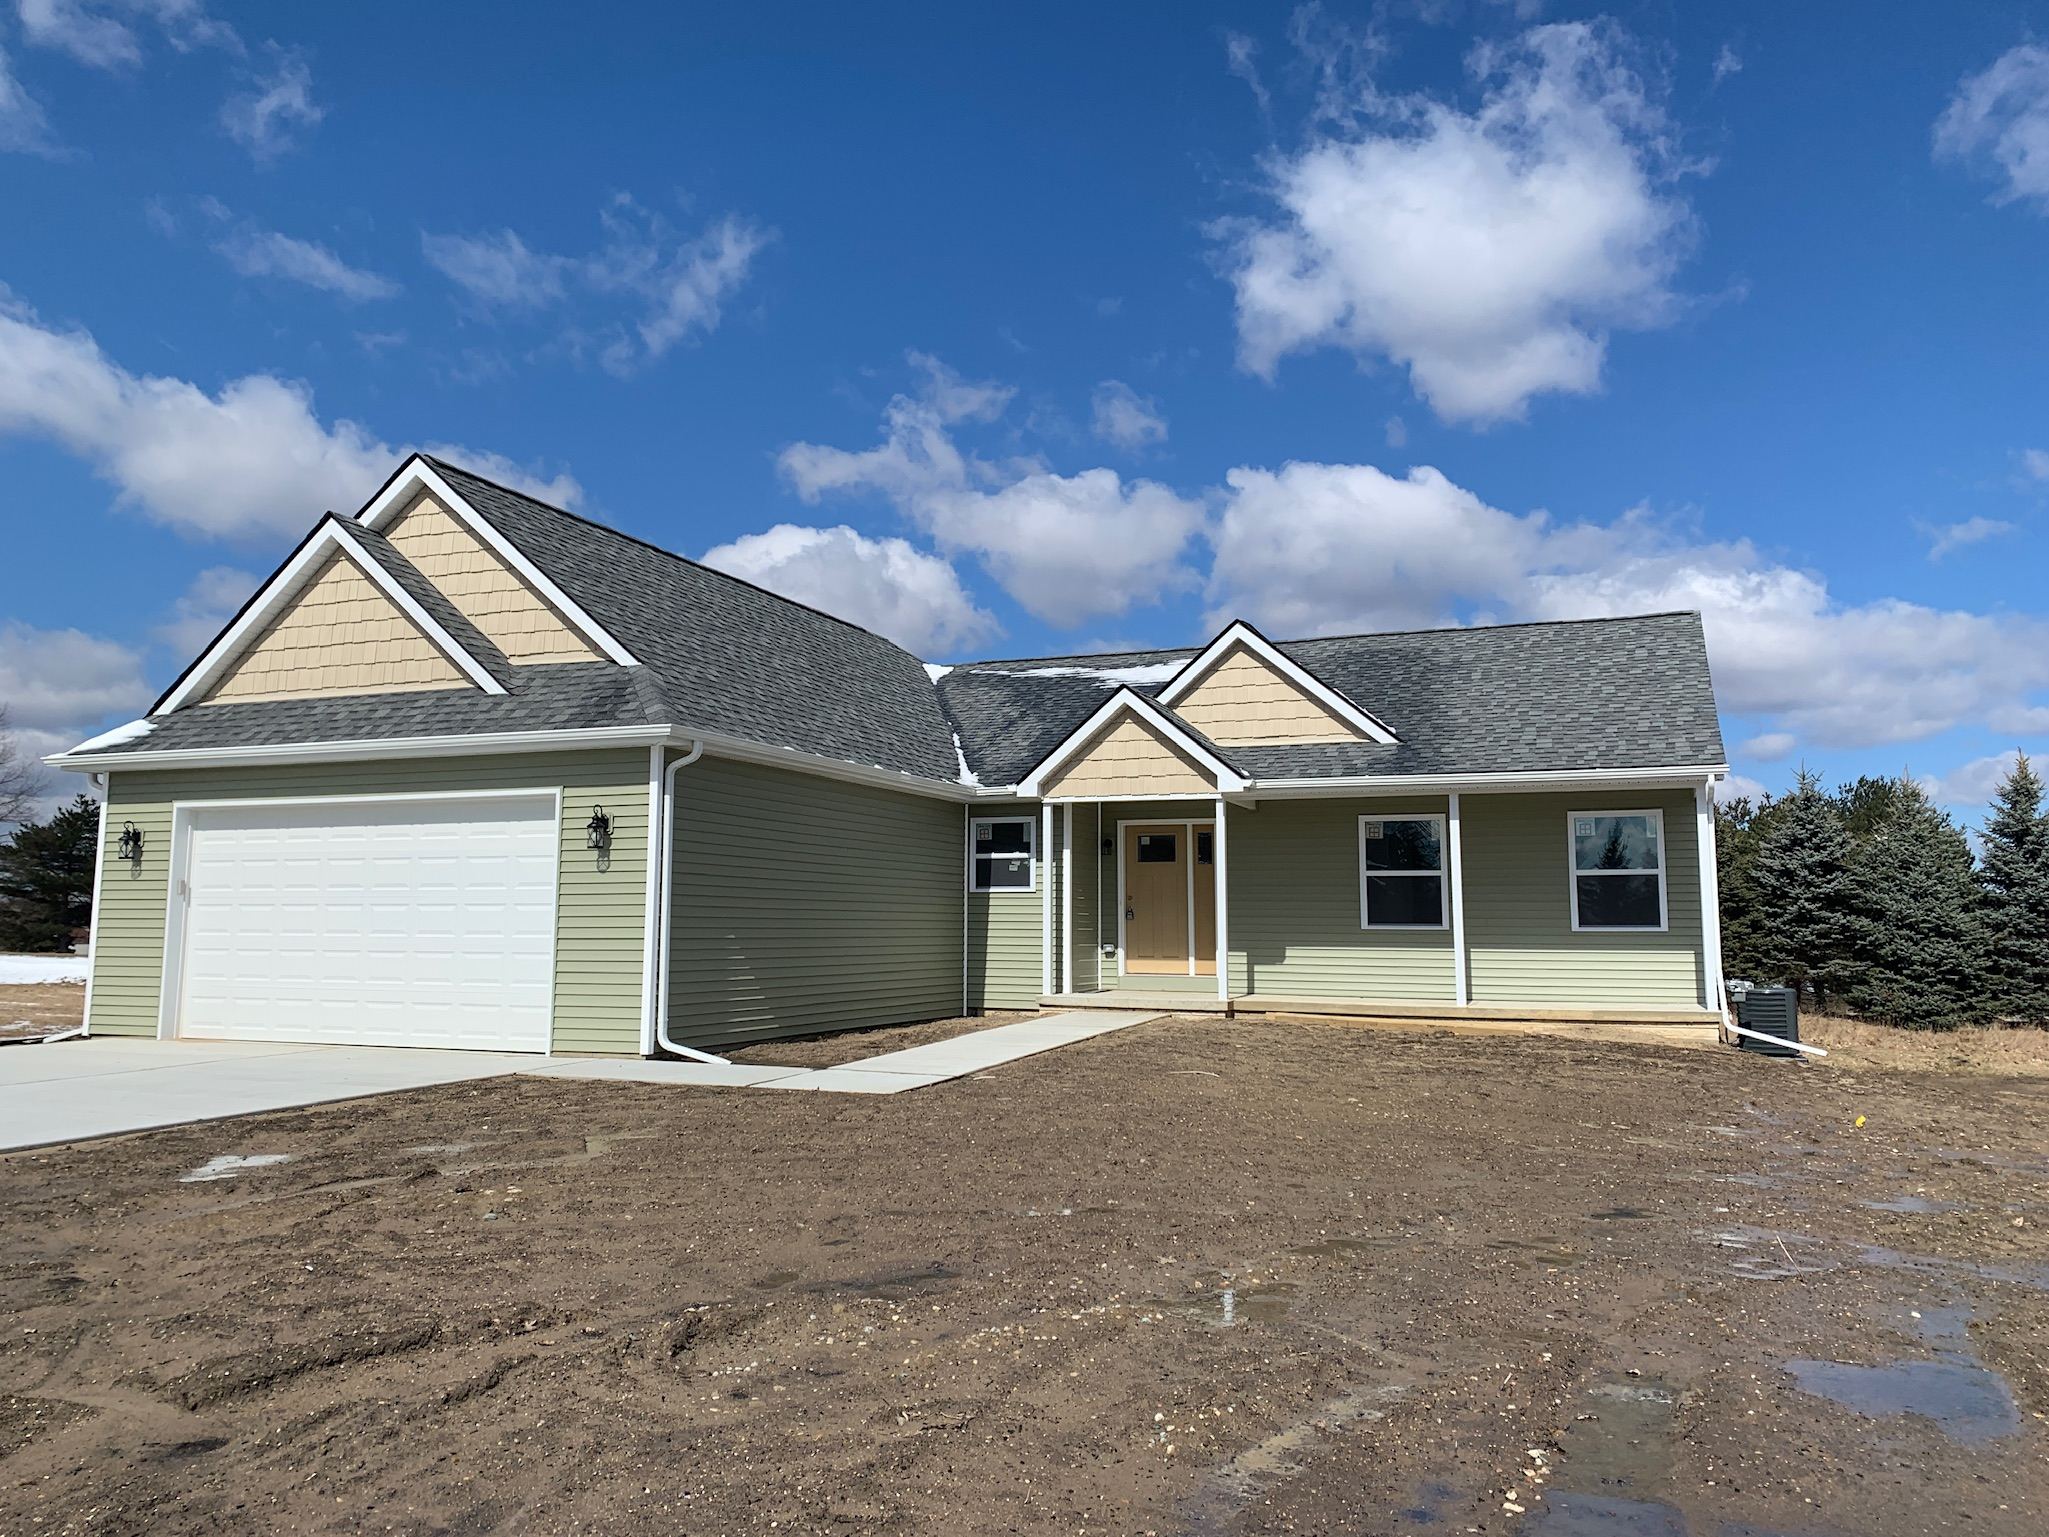 Golfside Drive, Lapeer  - New Construction, 2018Smith Street Builders, LLC Contact us today for a private showing.